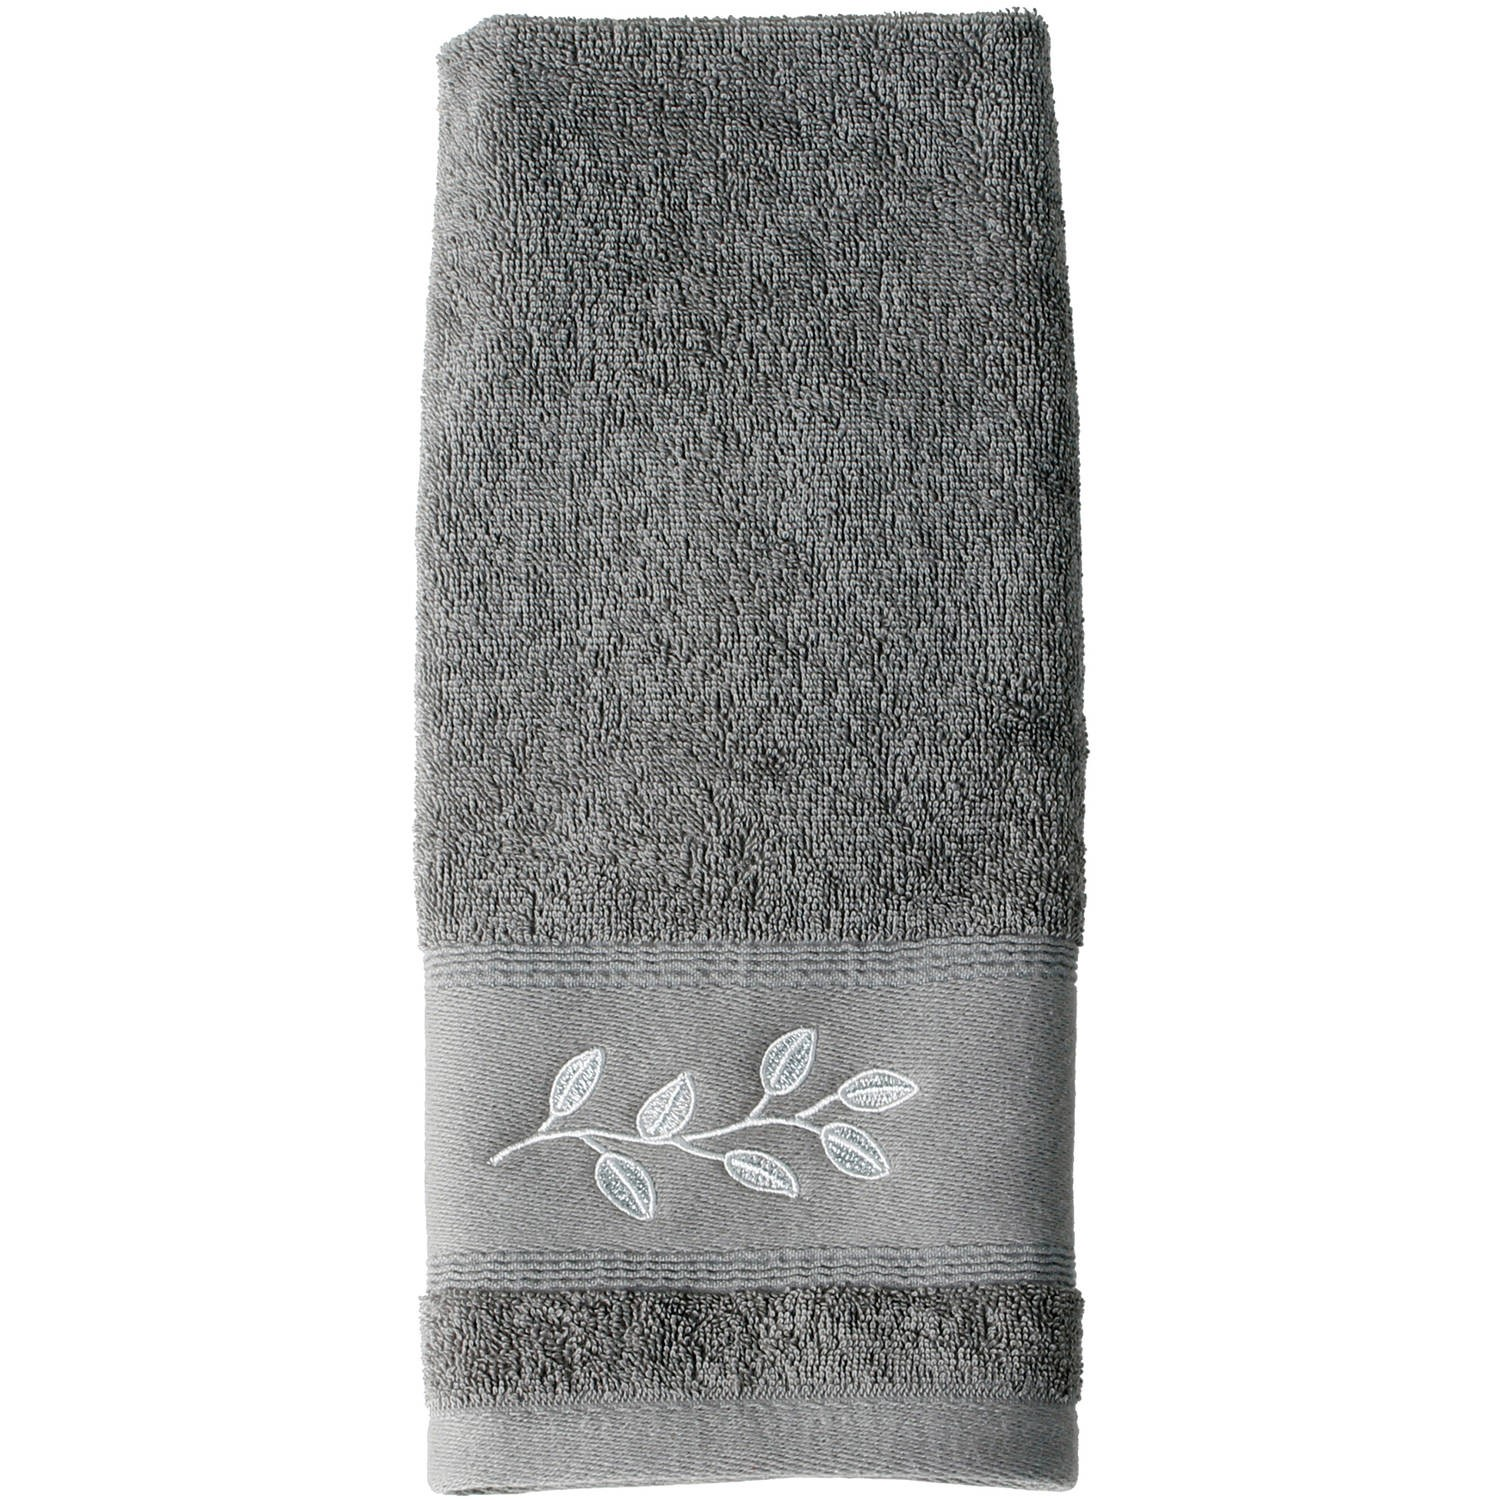 Mainstays Silver Leaves Bath Towel Collection by Saturday Knight LTD